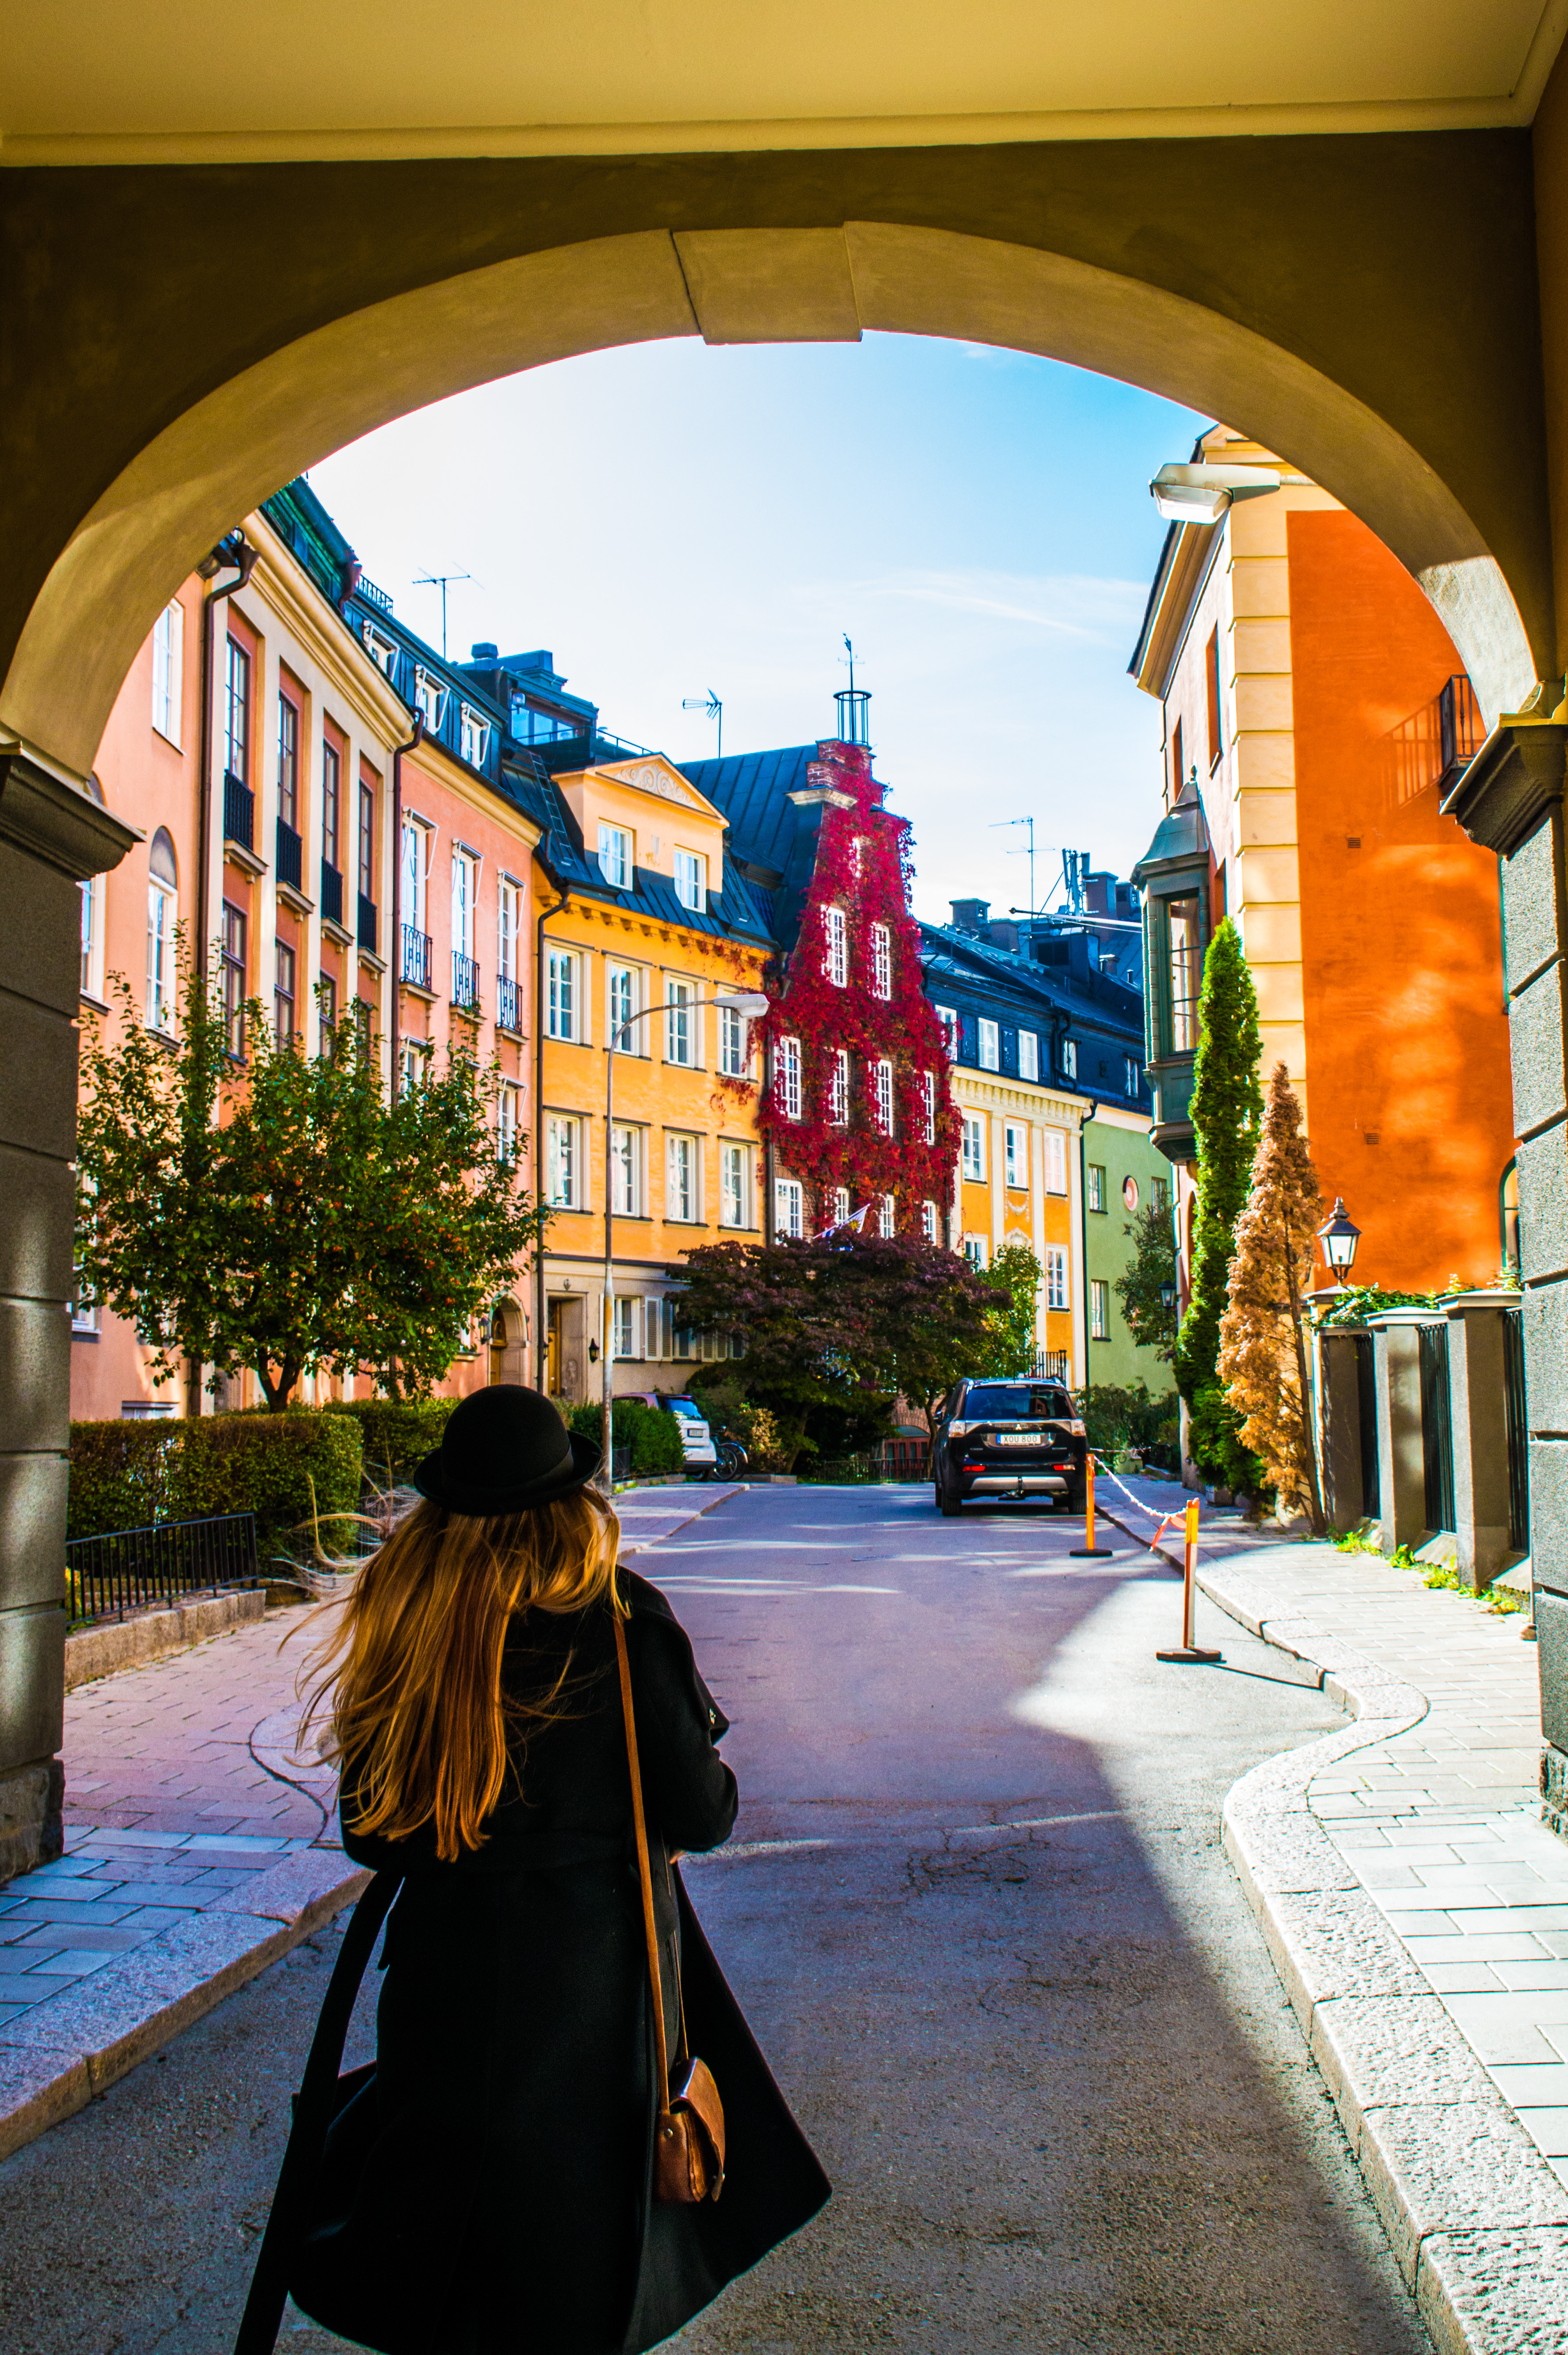 stockholms fall